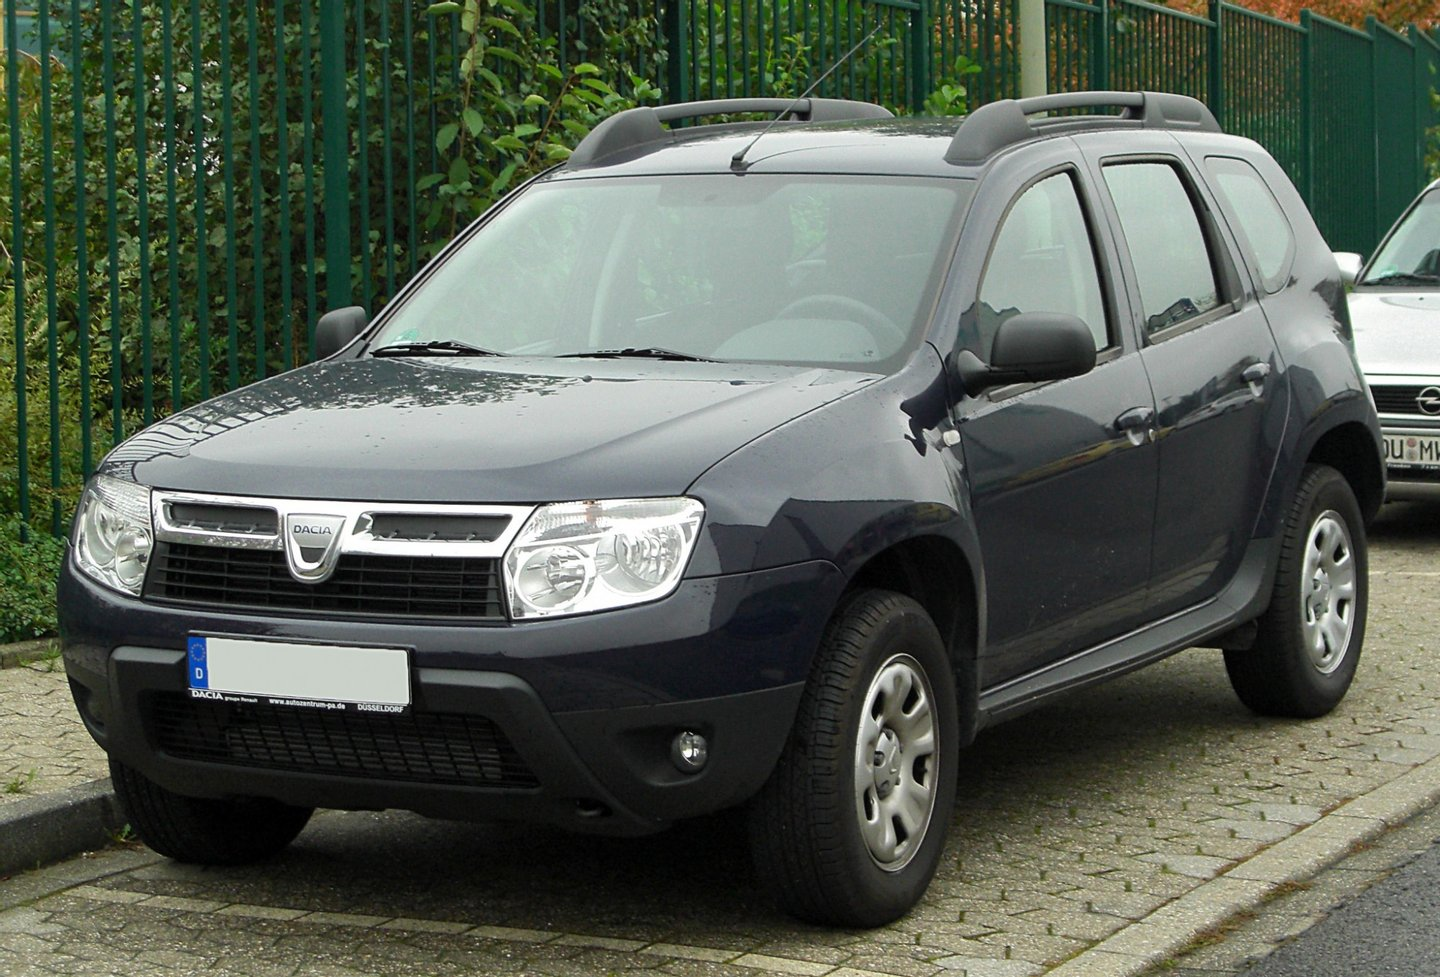 Dacia_Duster_1.5_dCi_front_20100928